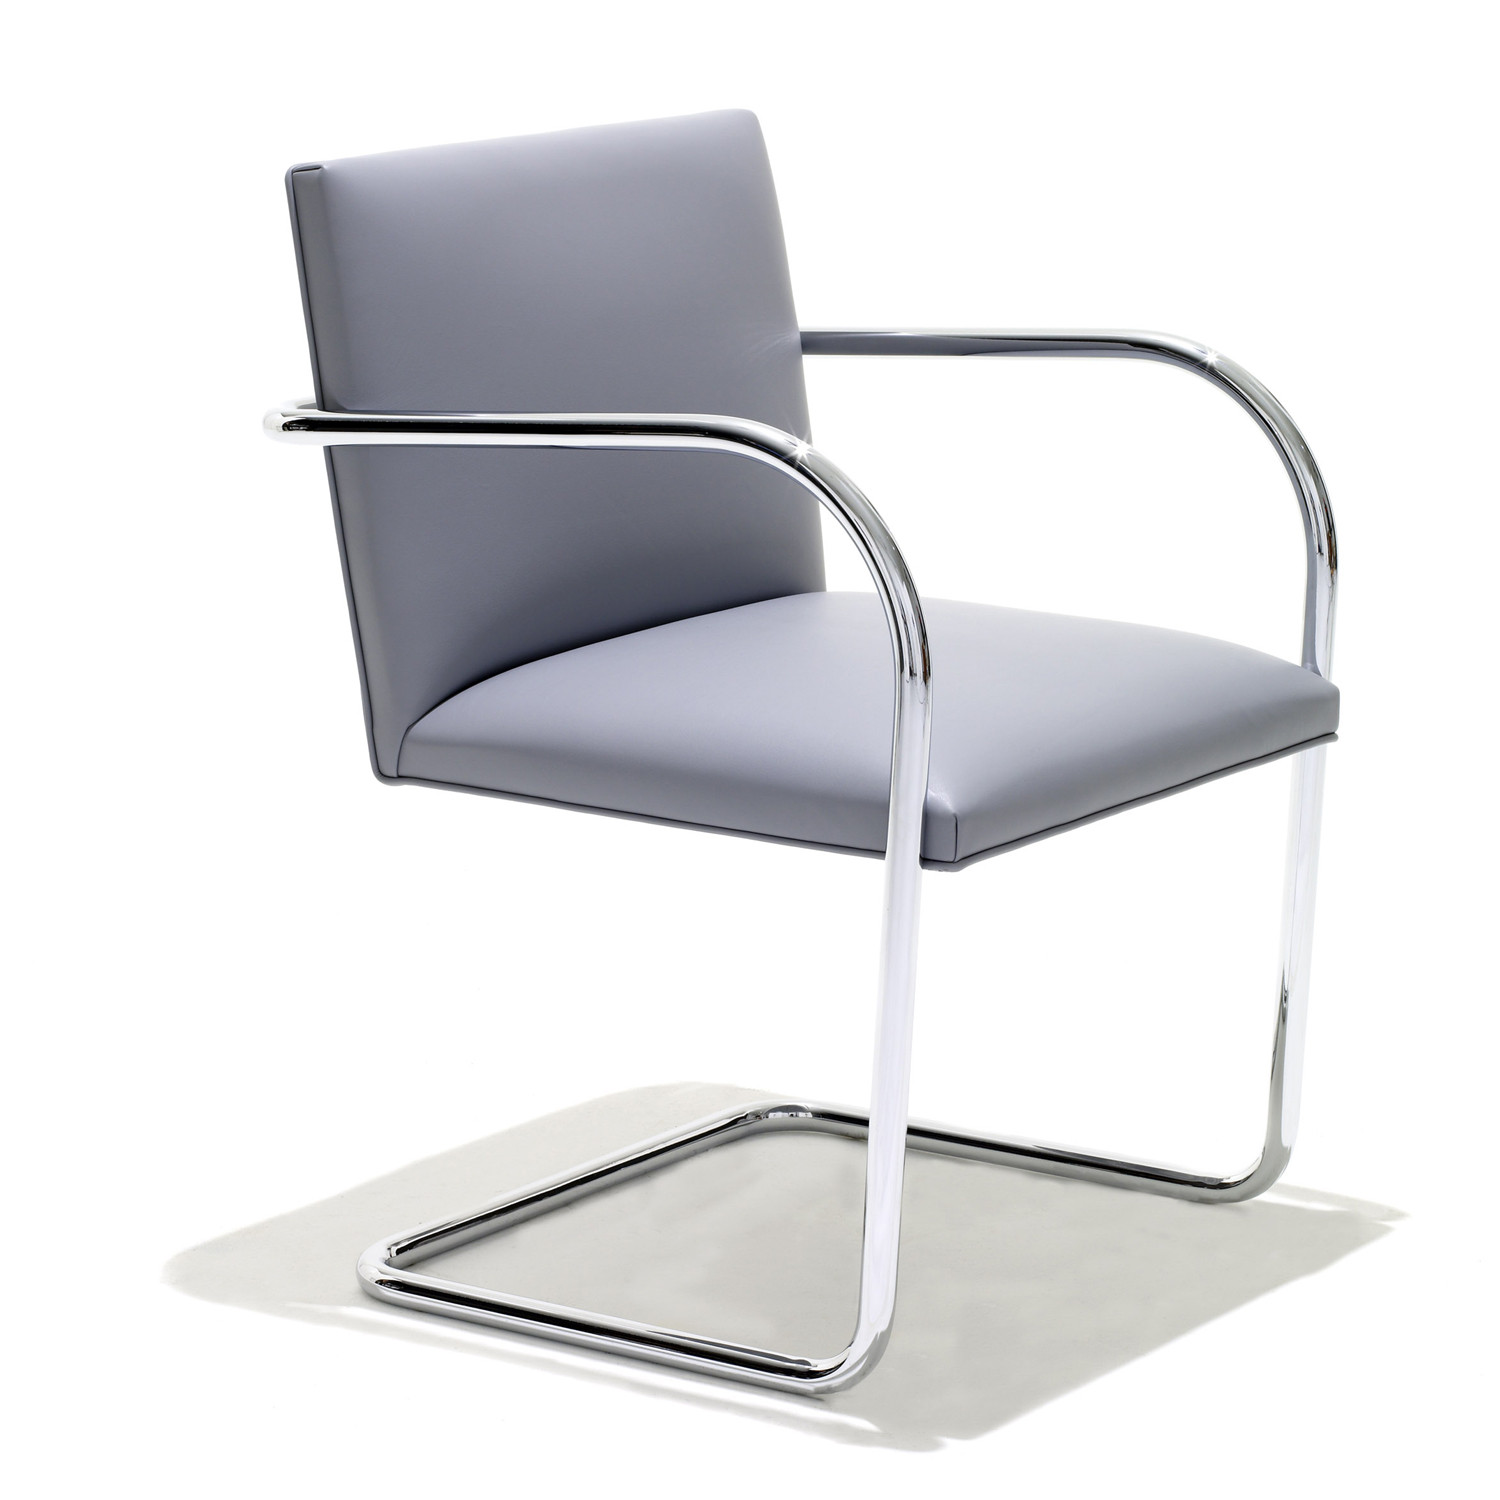 Tubular Brno Chair | Ludwig Mies van der Rohe | Apres Furniture | furniture stores in brno